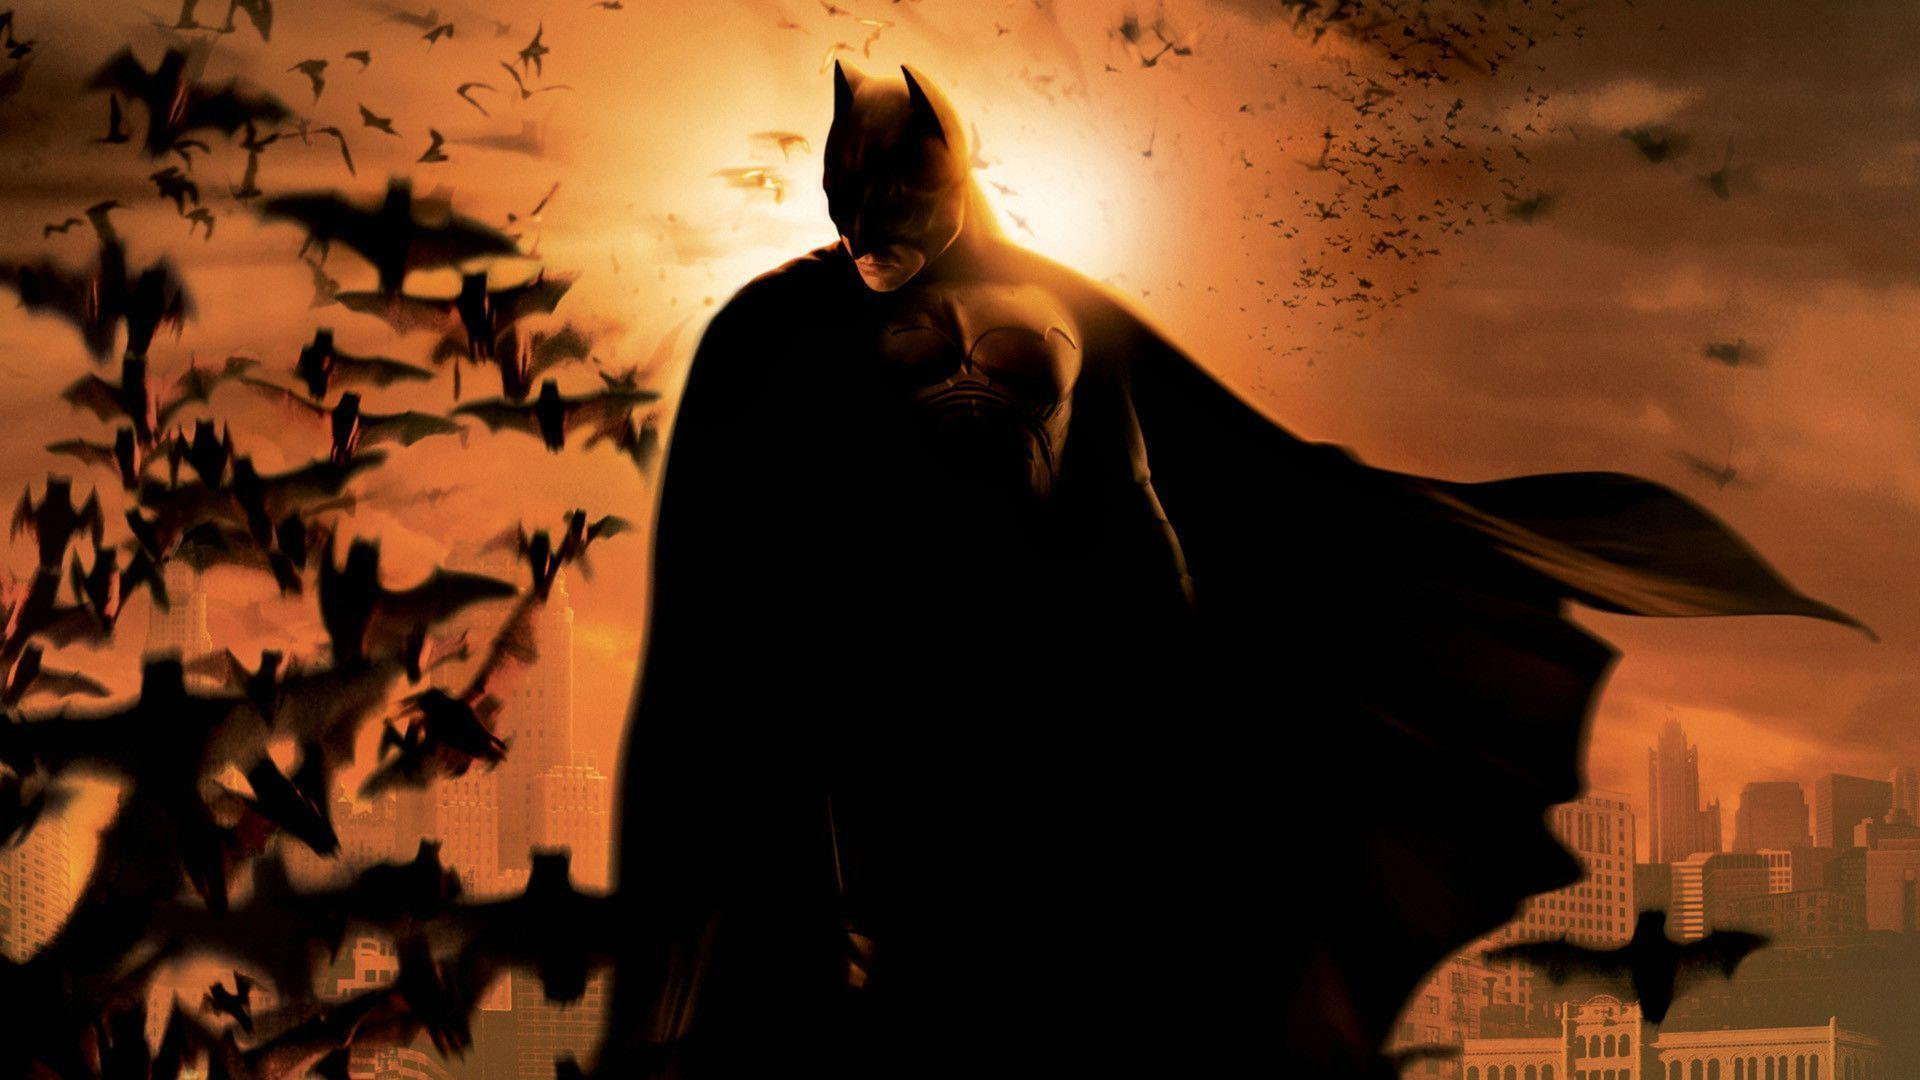 batman wallpaper hd for mobile cartoons images